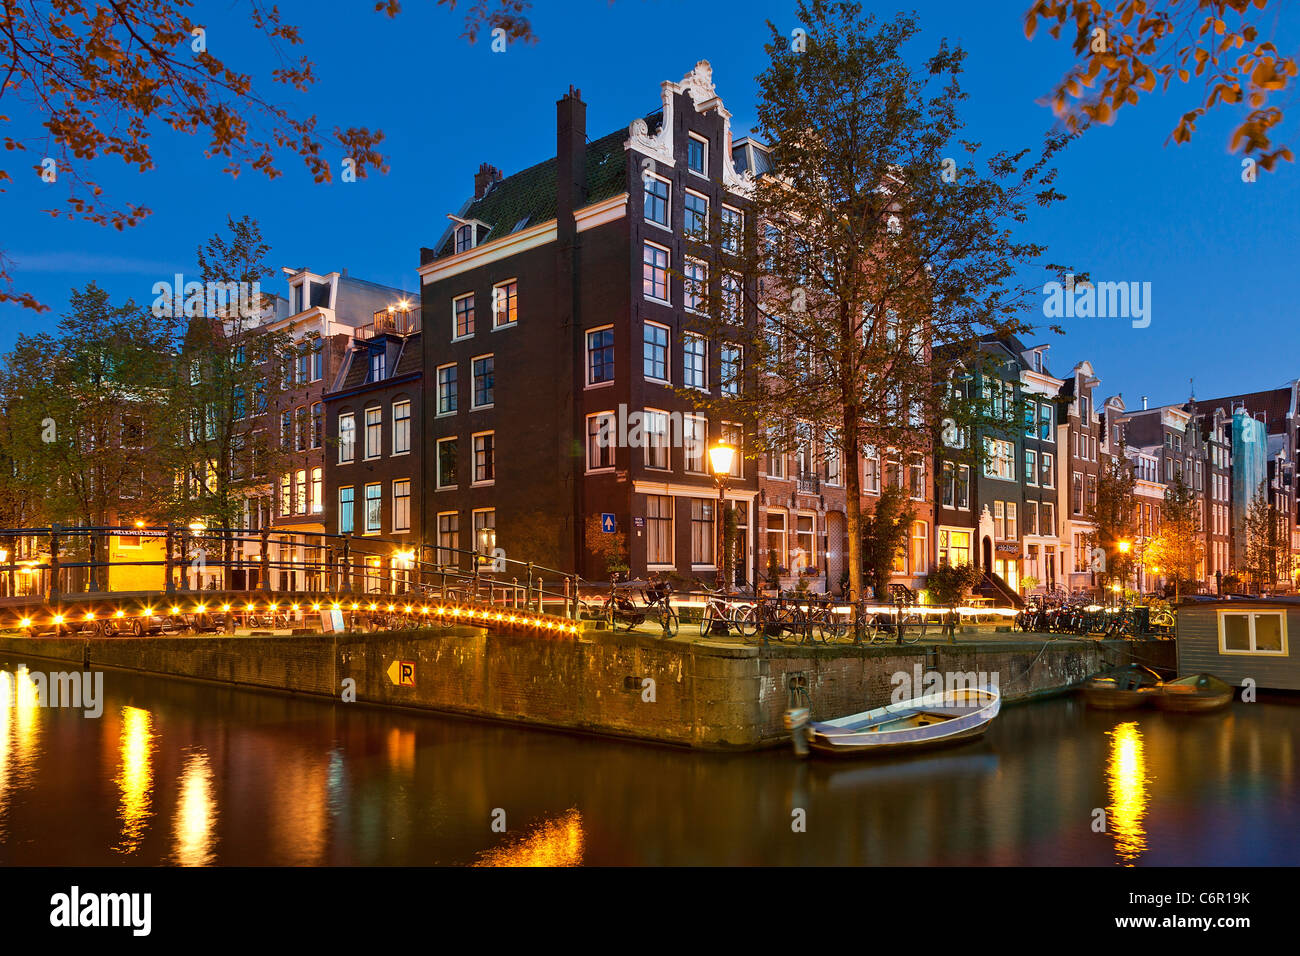 L'Europe, Pays-Bas, Amsterdam, Canal au crépuscule Photo Stock